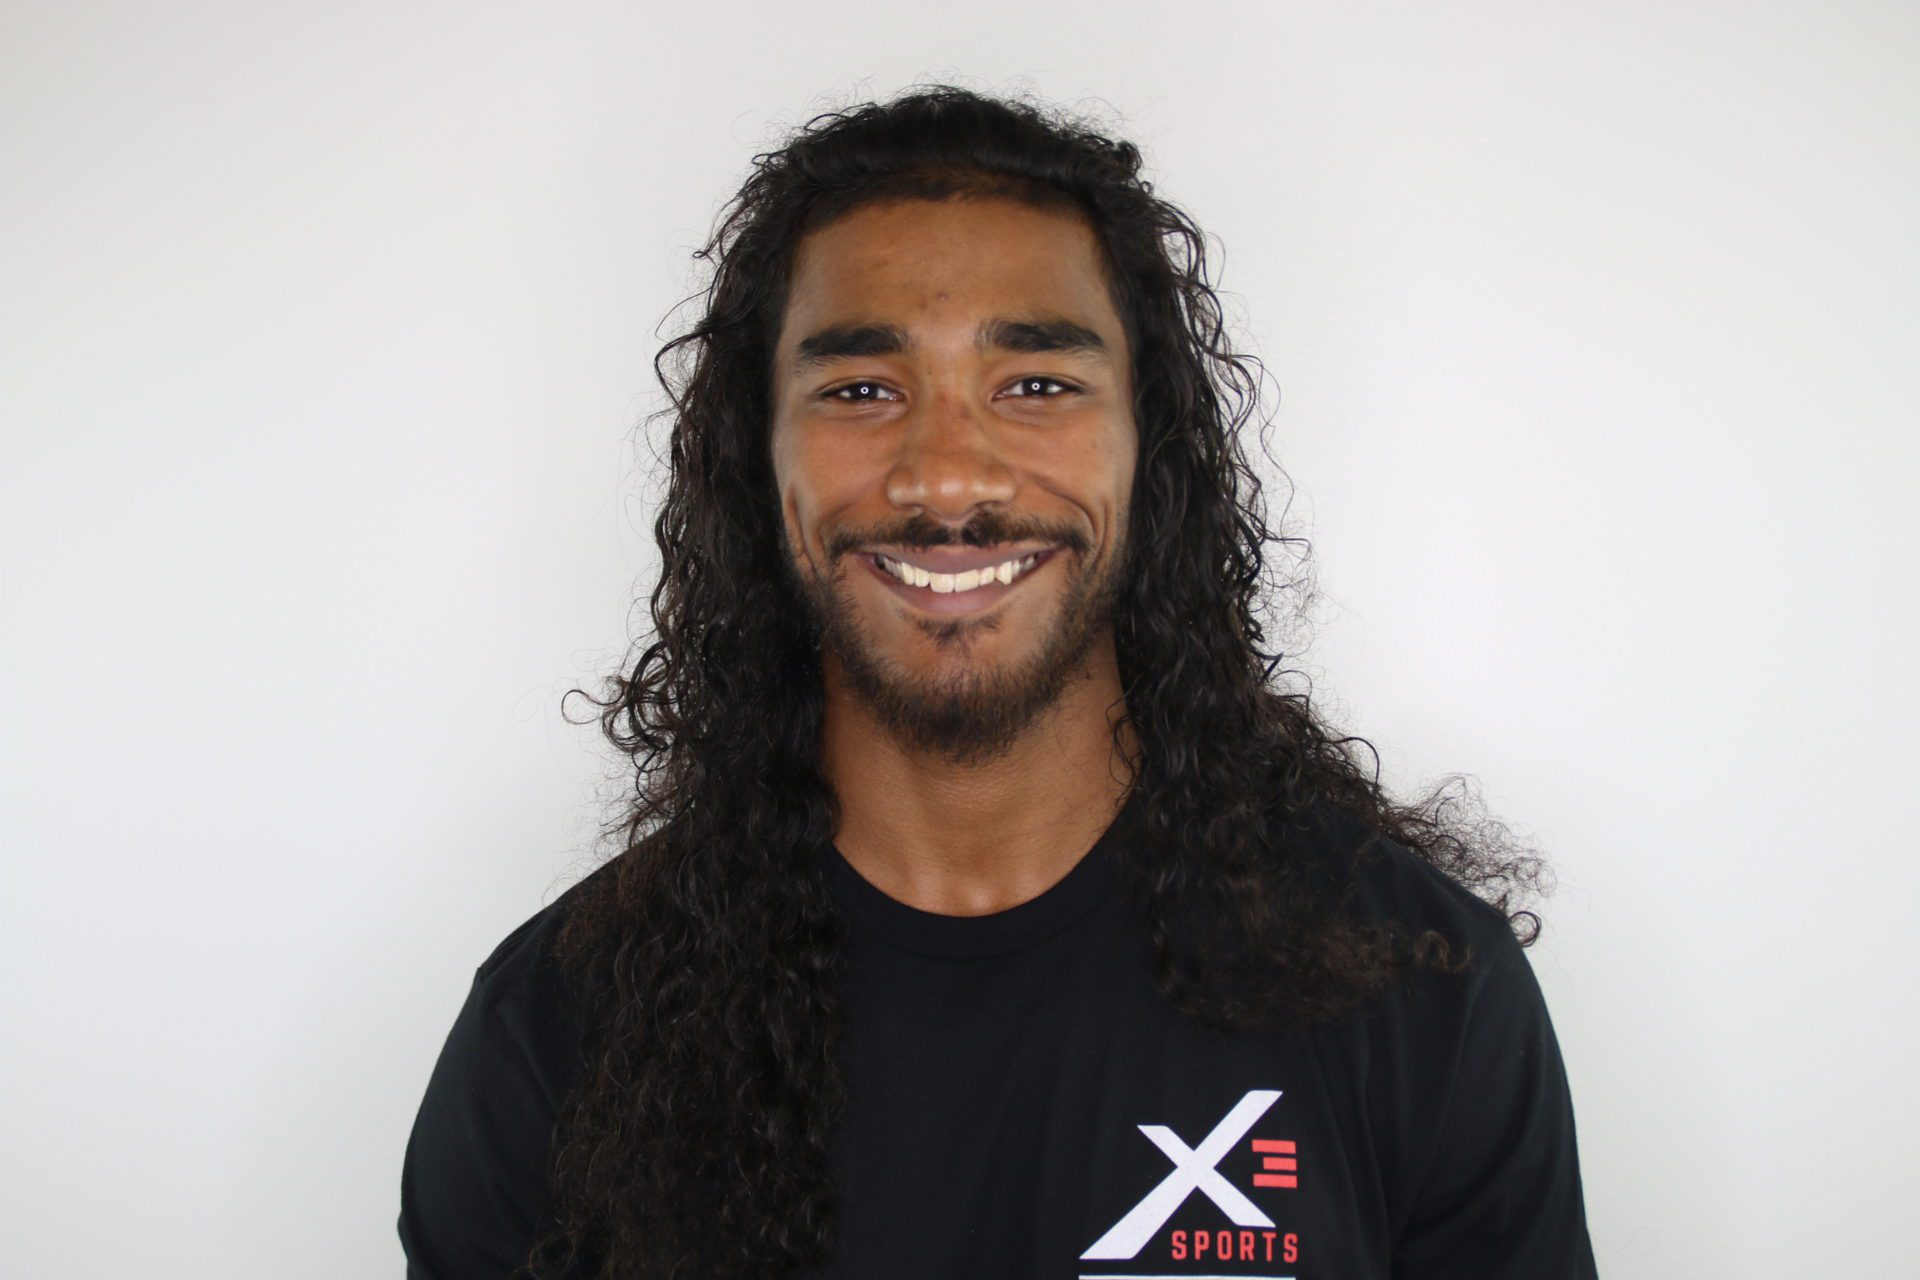 Robert Beecham | X3 Sports Employee | X3 Sports